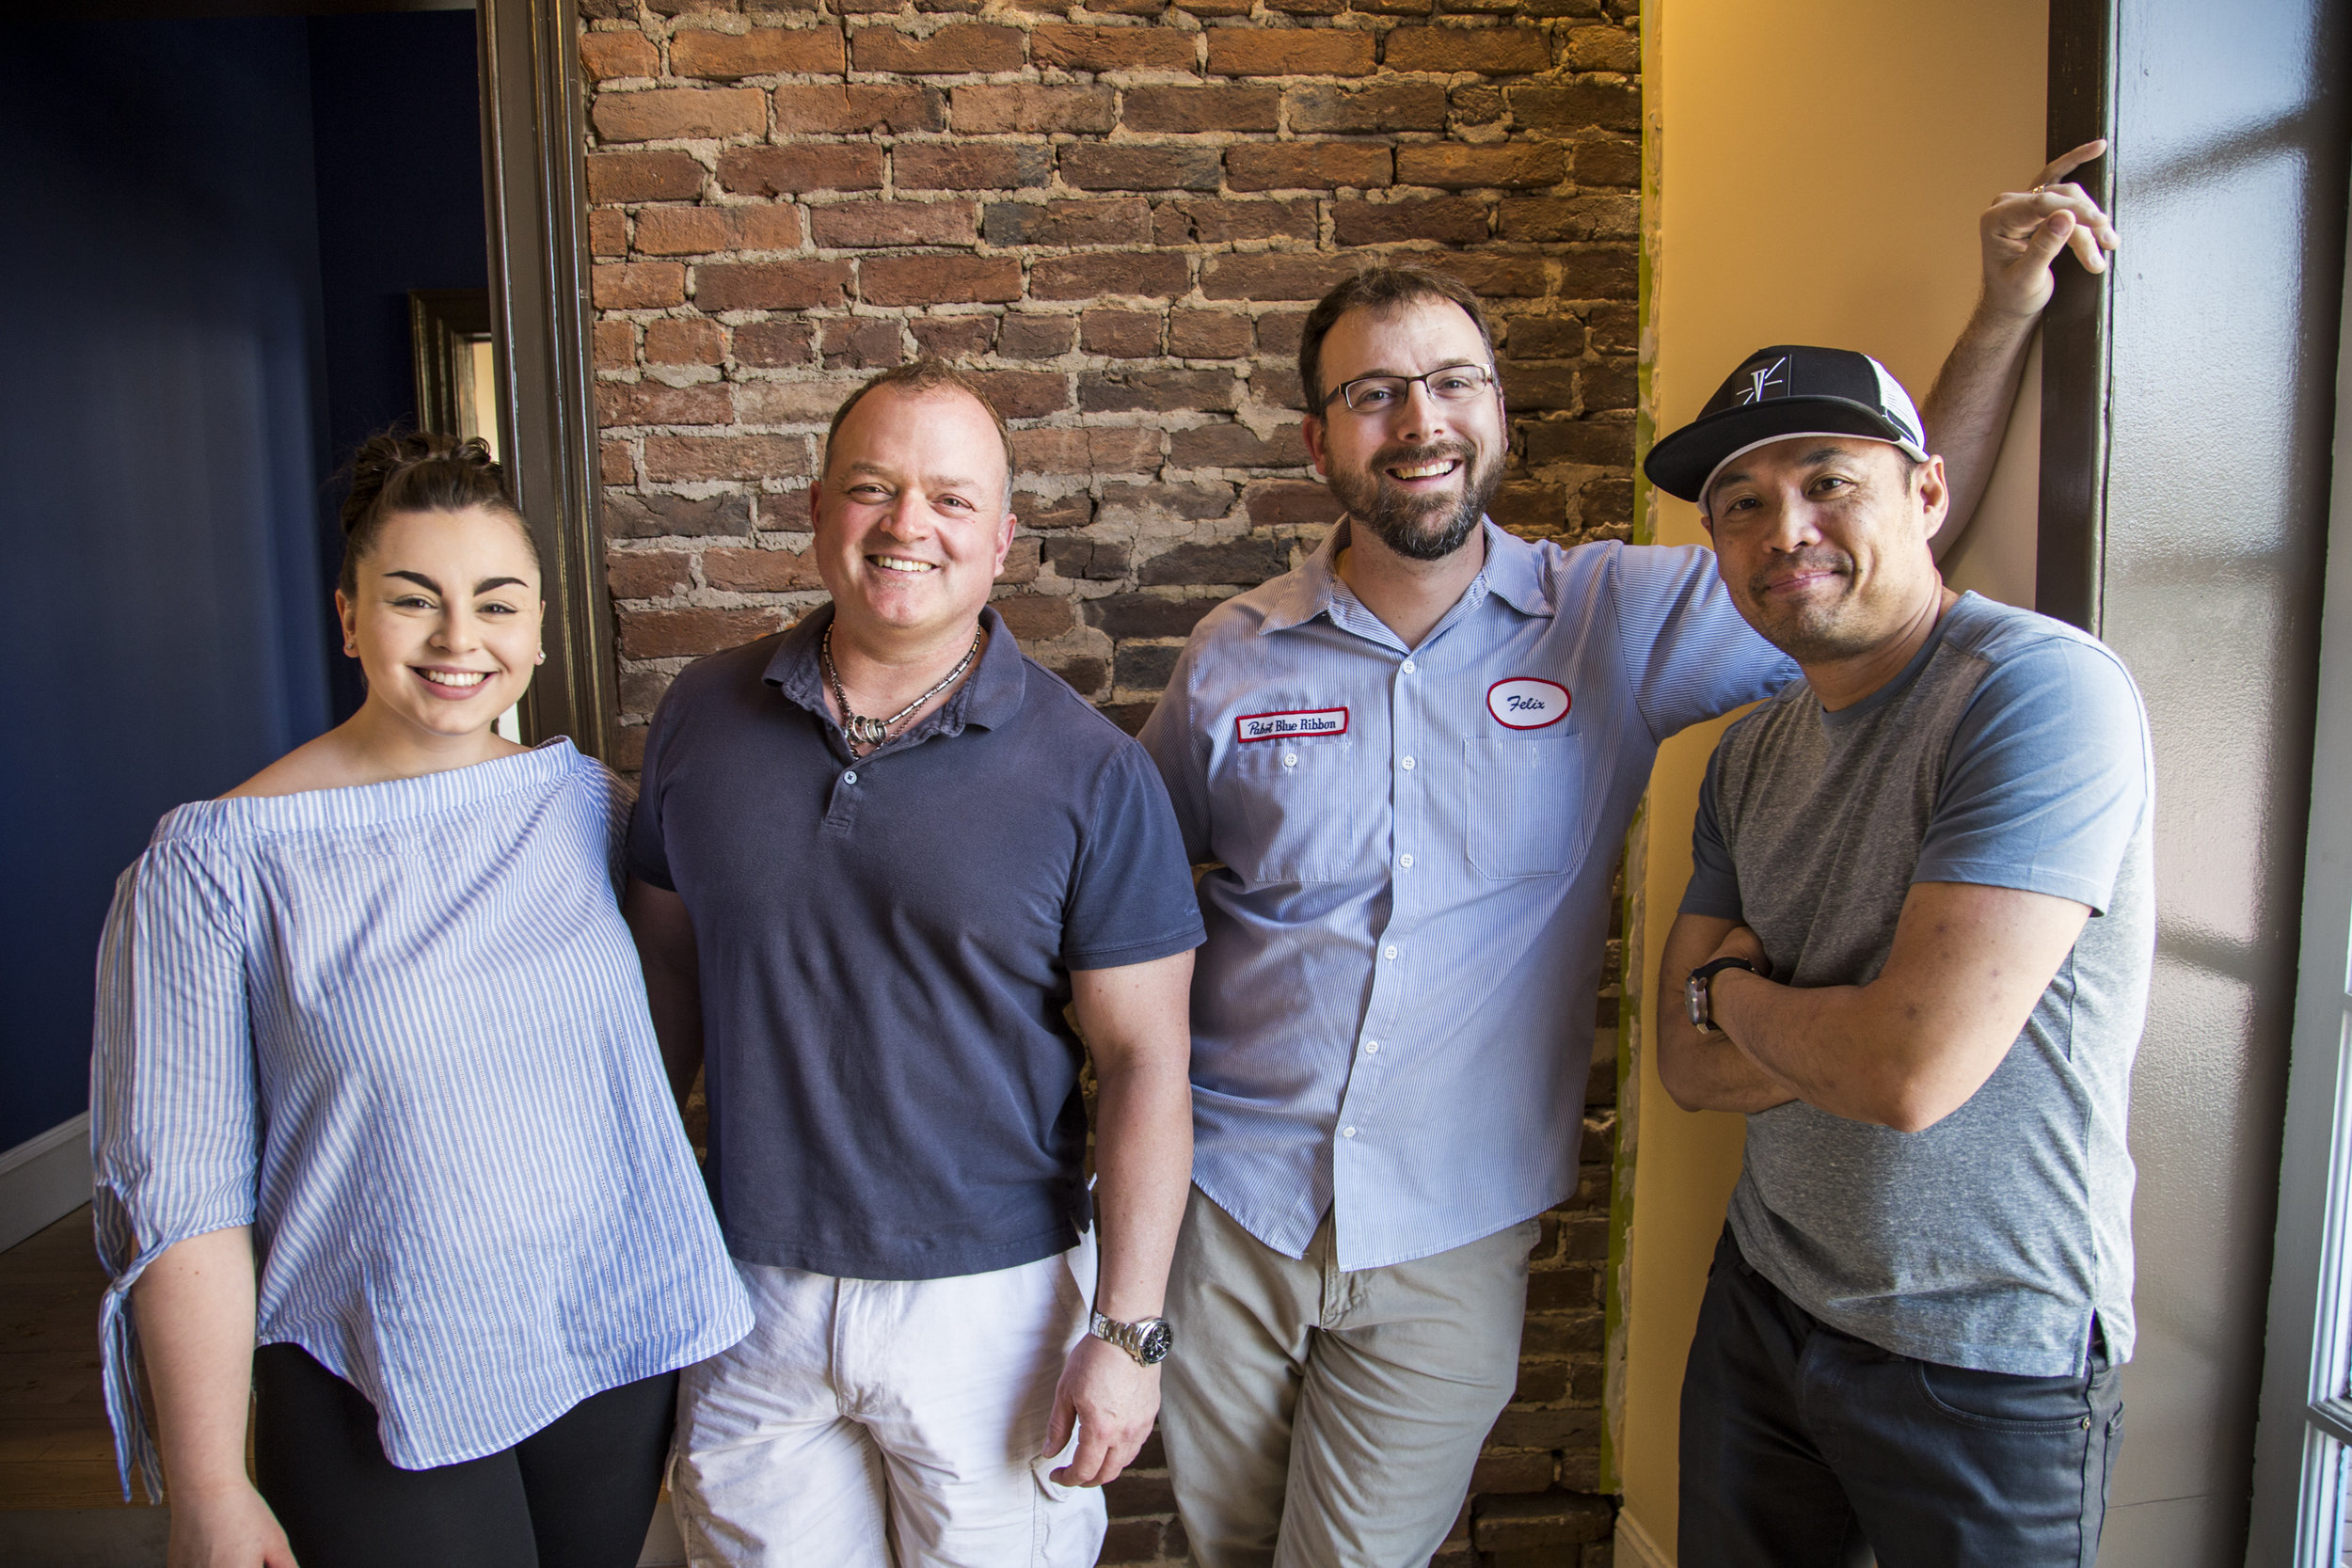 Delirium Team, L to R: Aislin Kavaldjian, AGM; Rick Leith, Partner; Curtis Allred, Proprietor; Vi Nguyen, Chef  Credit Alex Mangione Photography